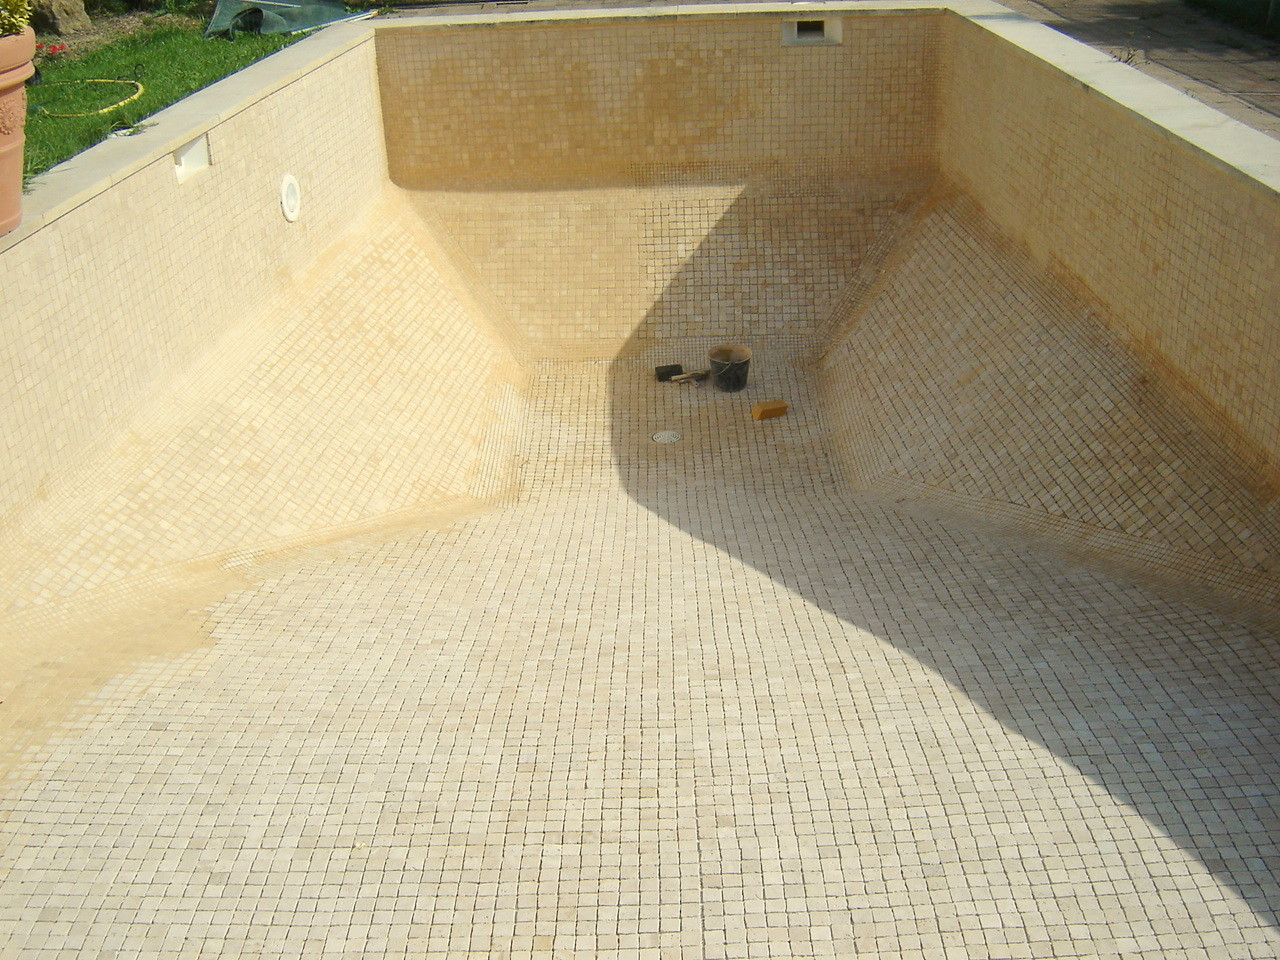 Piscine en Travertin 5x5